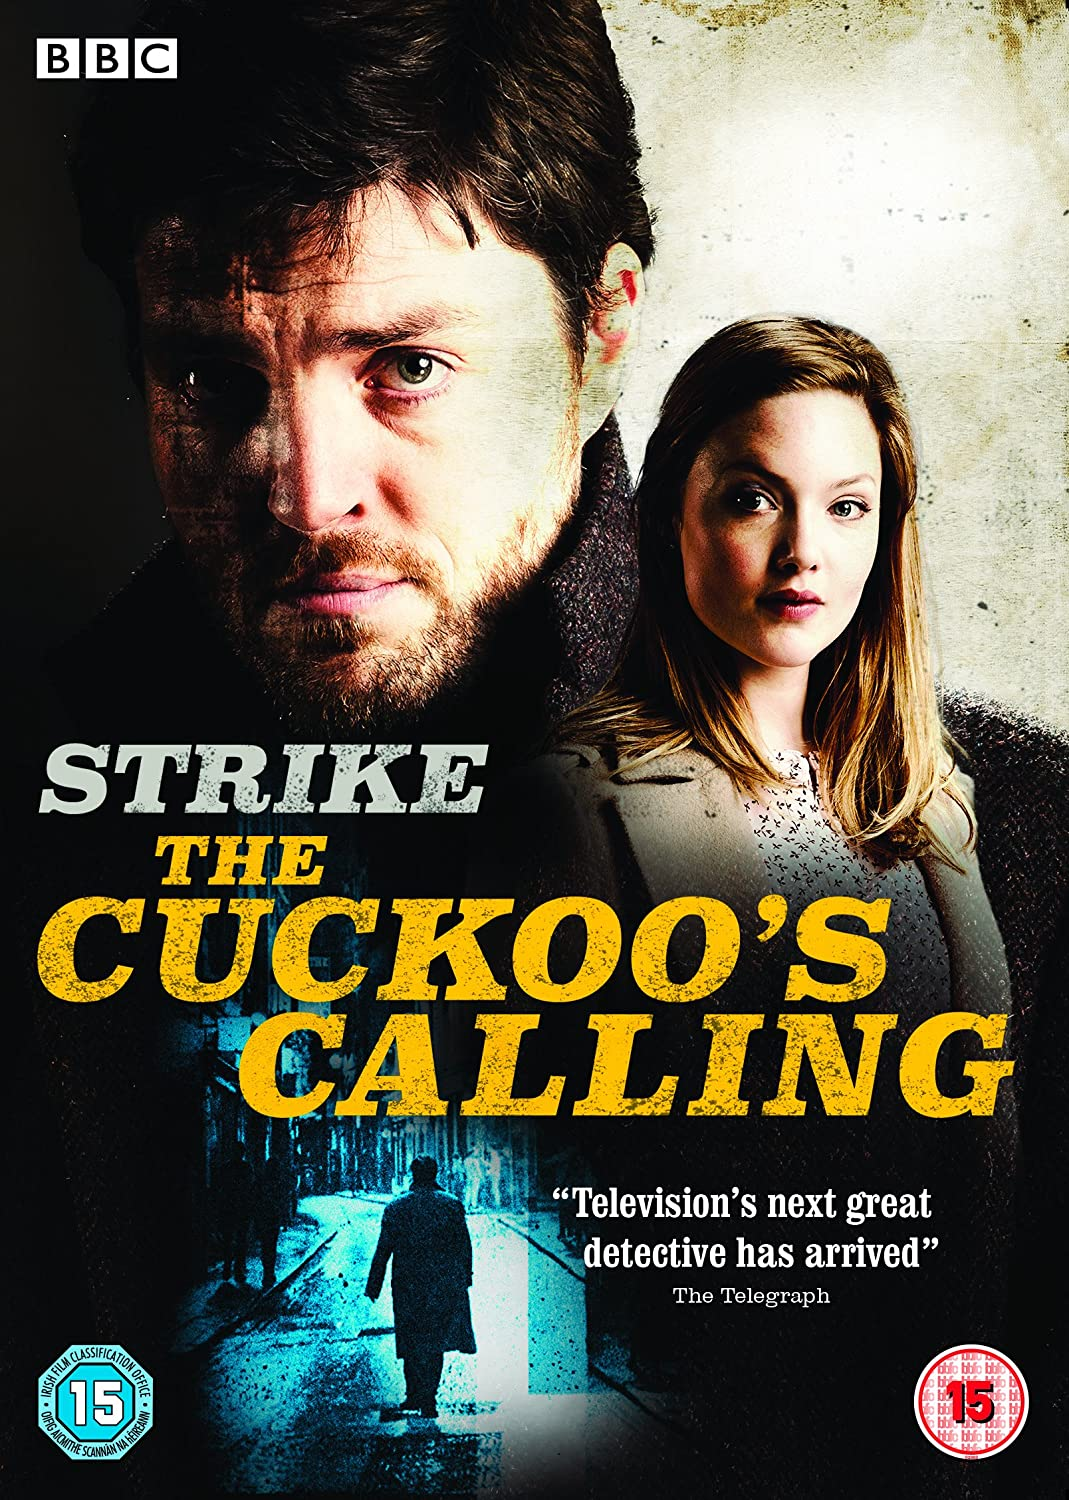 The Cormoran Strike Mysteries : The Cuckoo's Calling BBC 2017 - Page 2 91n1wXkvvYL._SL1500_